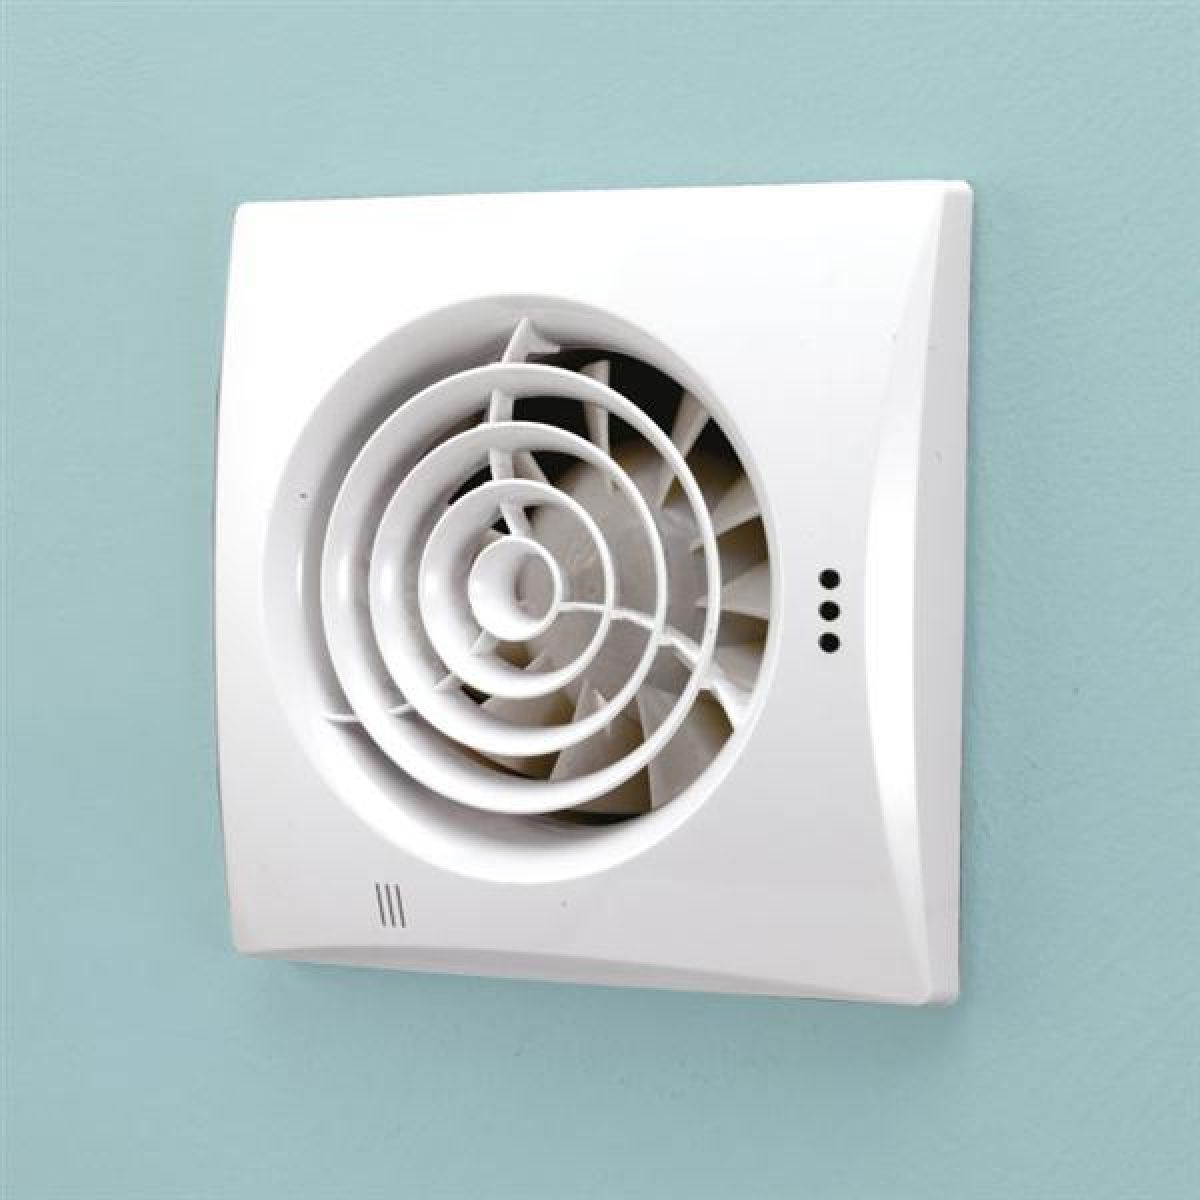 HiB Hush White Wall Mounted Wetroom Extractor Fan with Humidity Sensor